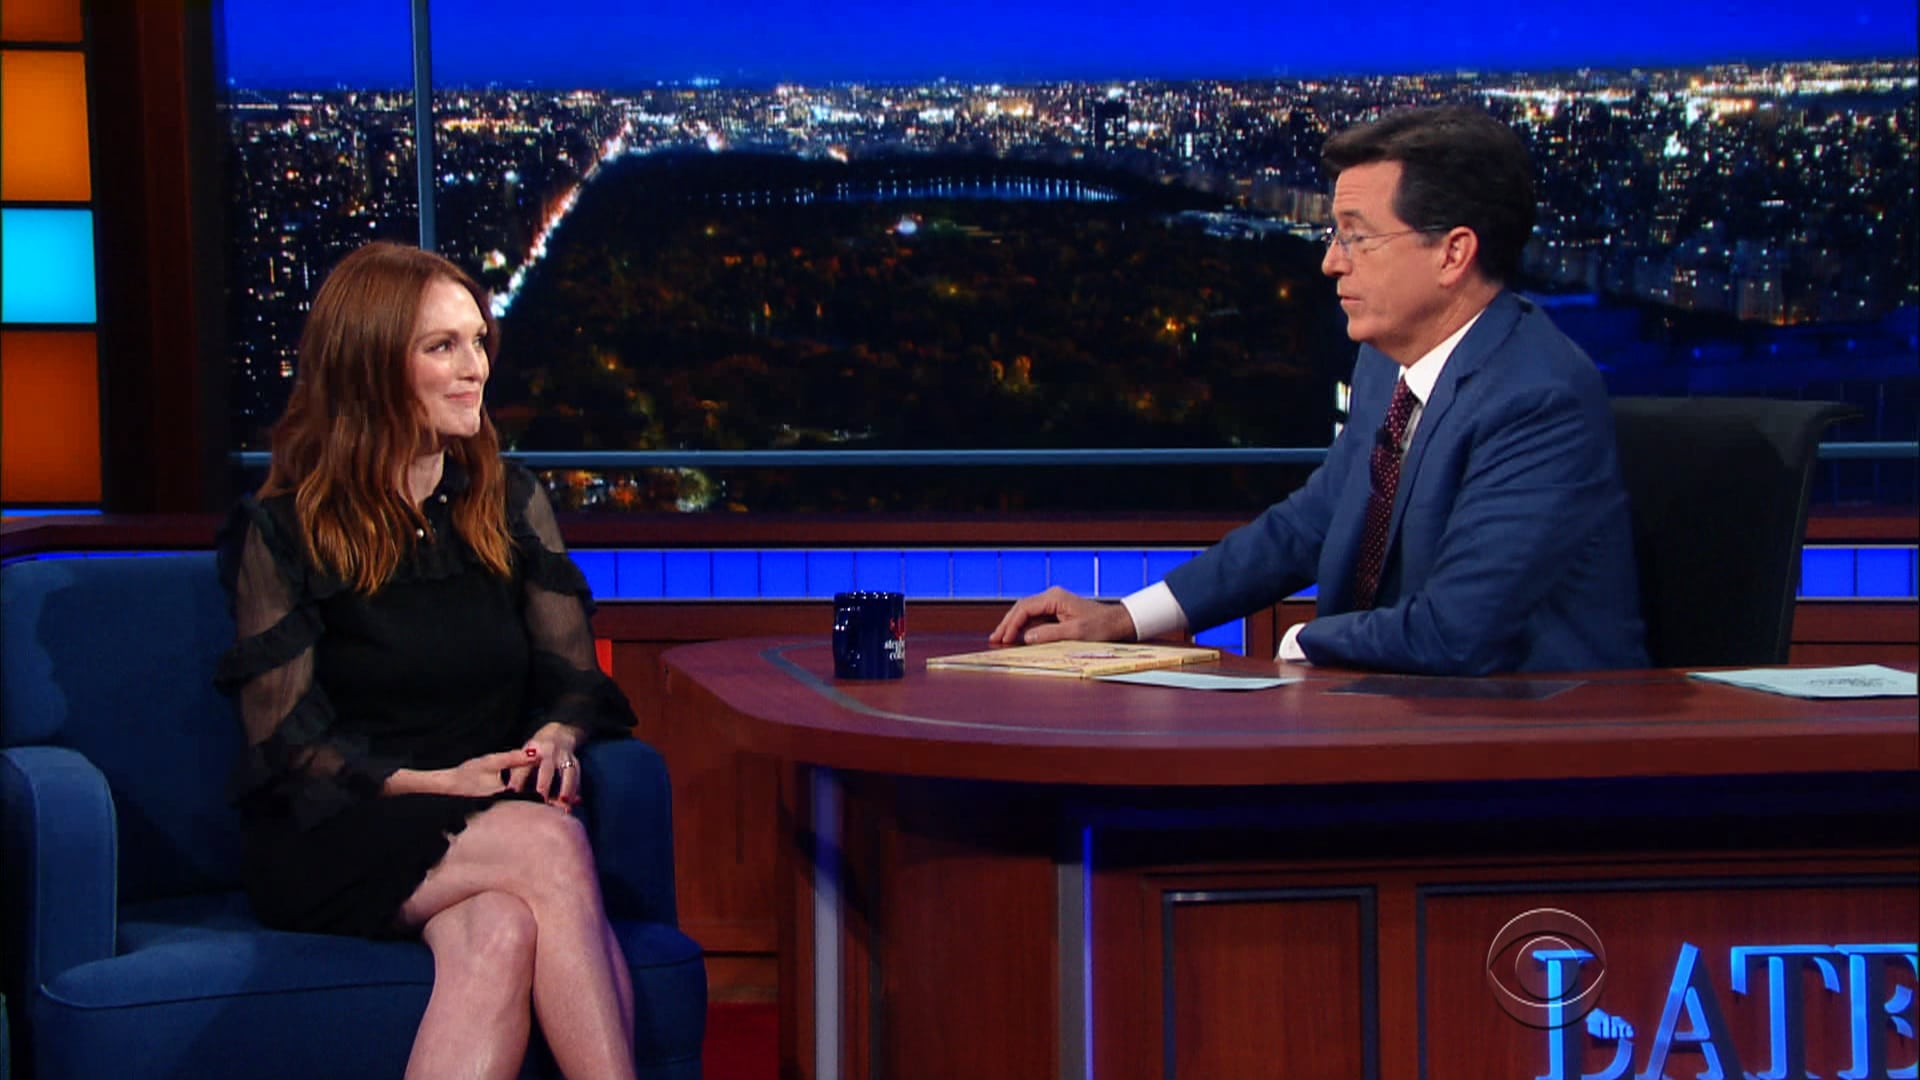 The Late Show with Stephen Colbert Season 1 :Episode 46  Julianne Moore, Burt Reynolds, Public Image Ltd